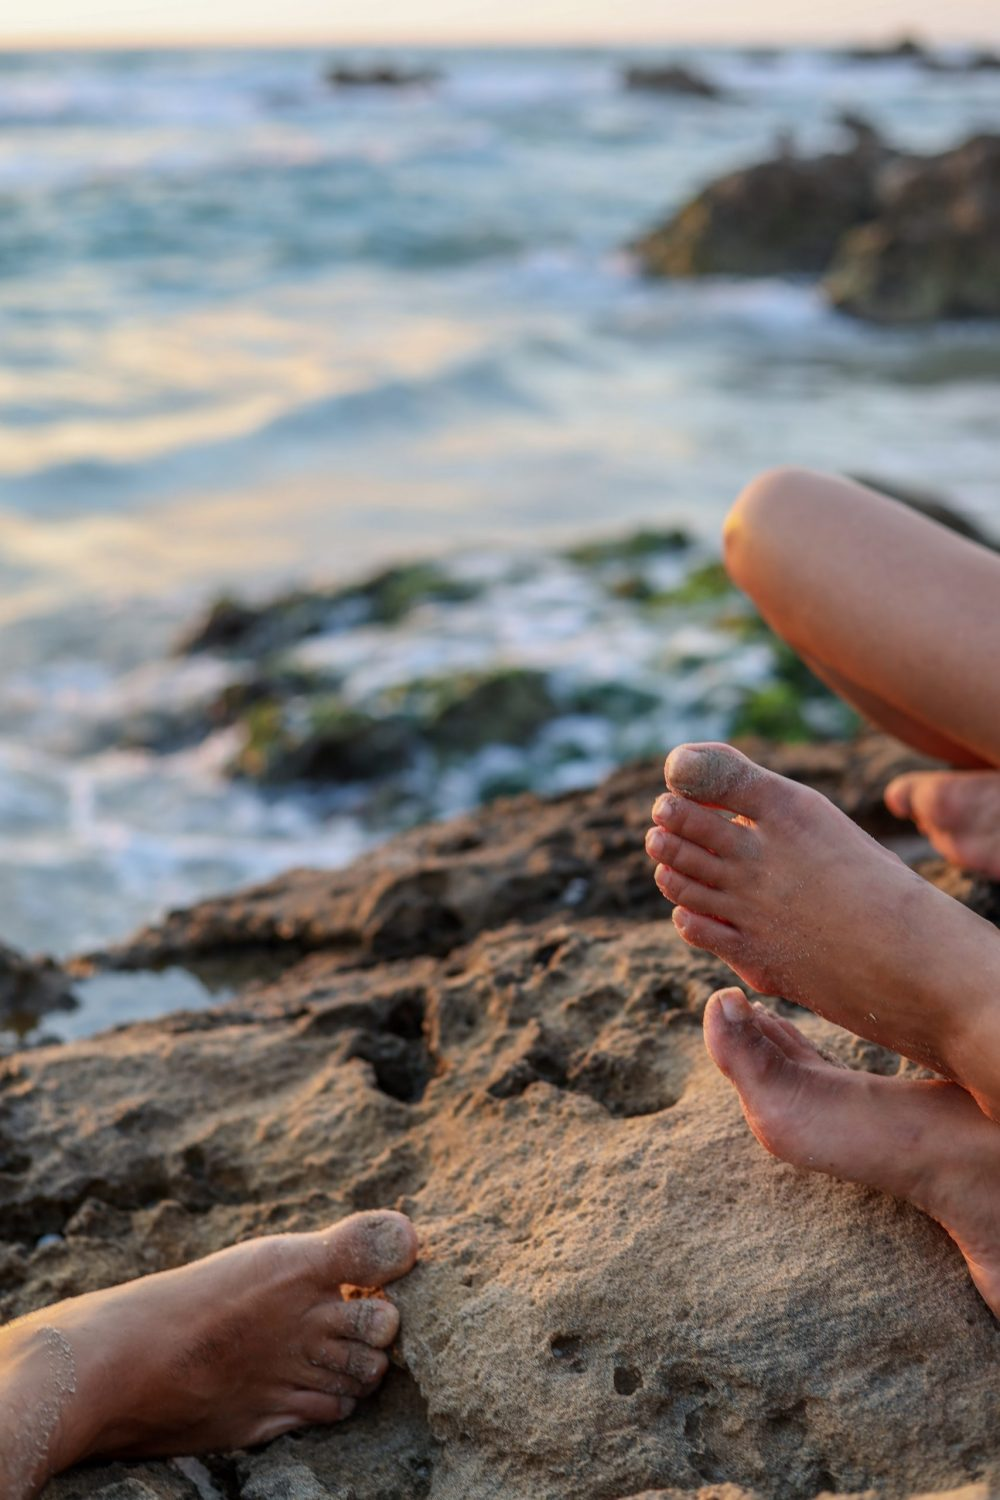 5 Ways To Make Every Day More Mindful